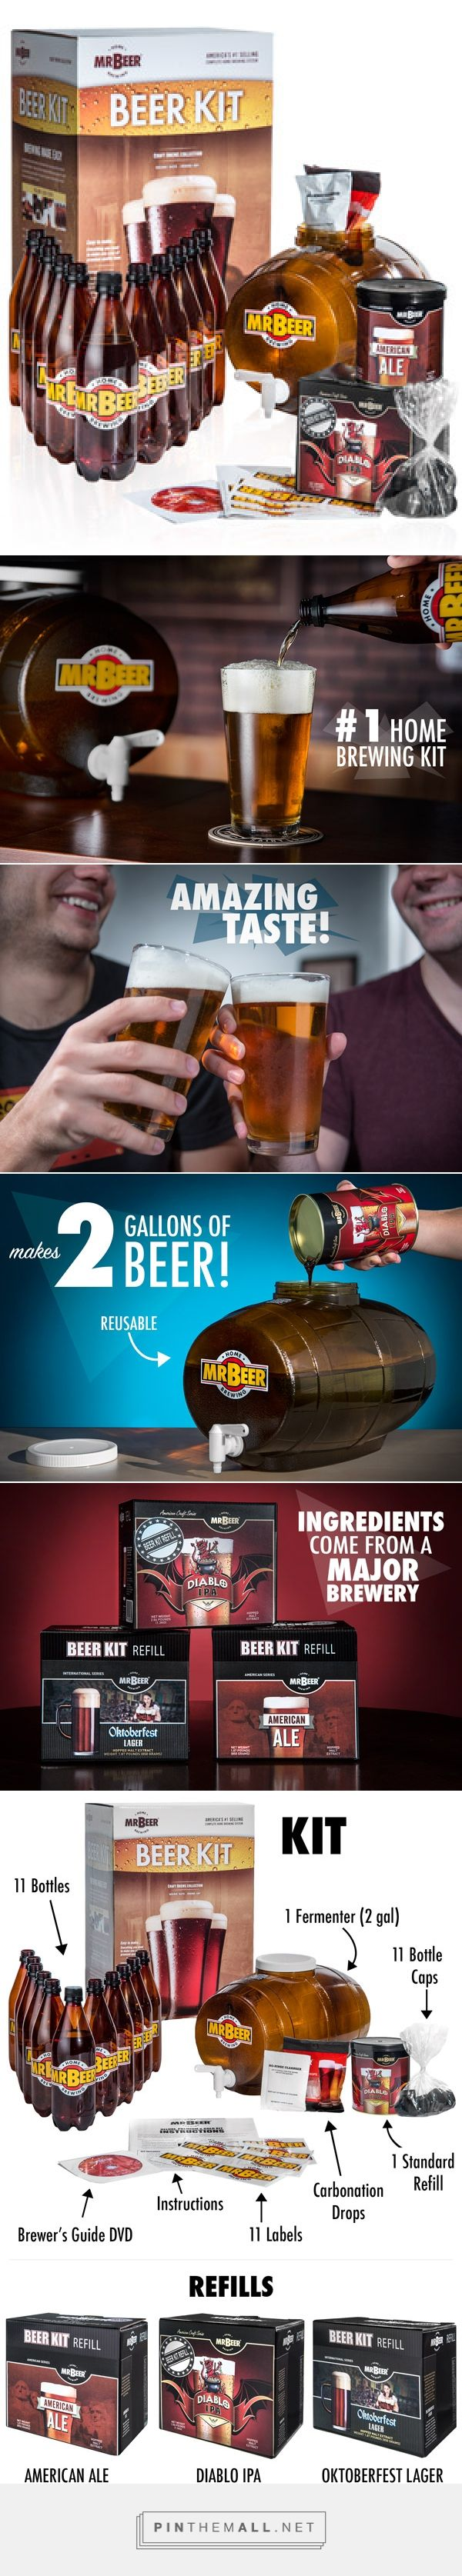 Best 25+ Beer brewing kits ideas on Pinterest | Beer brewing, How ...